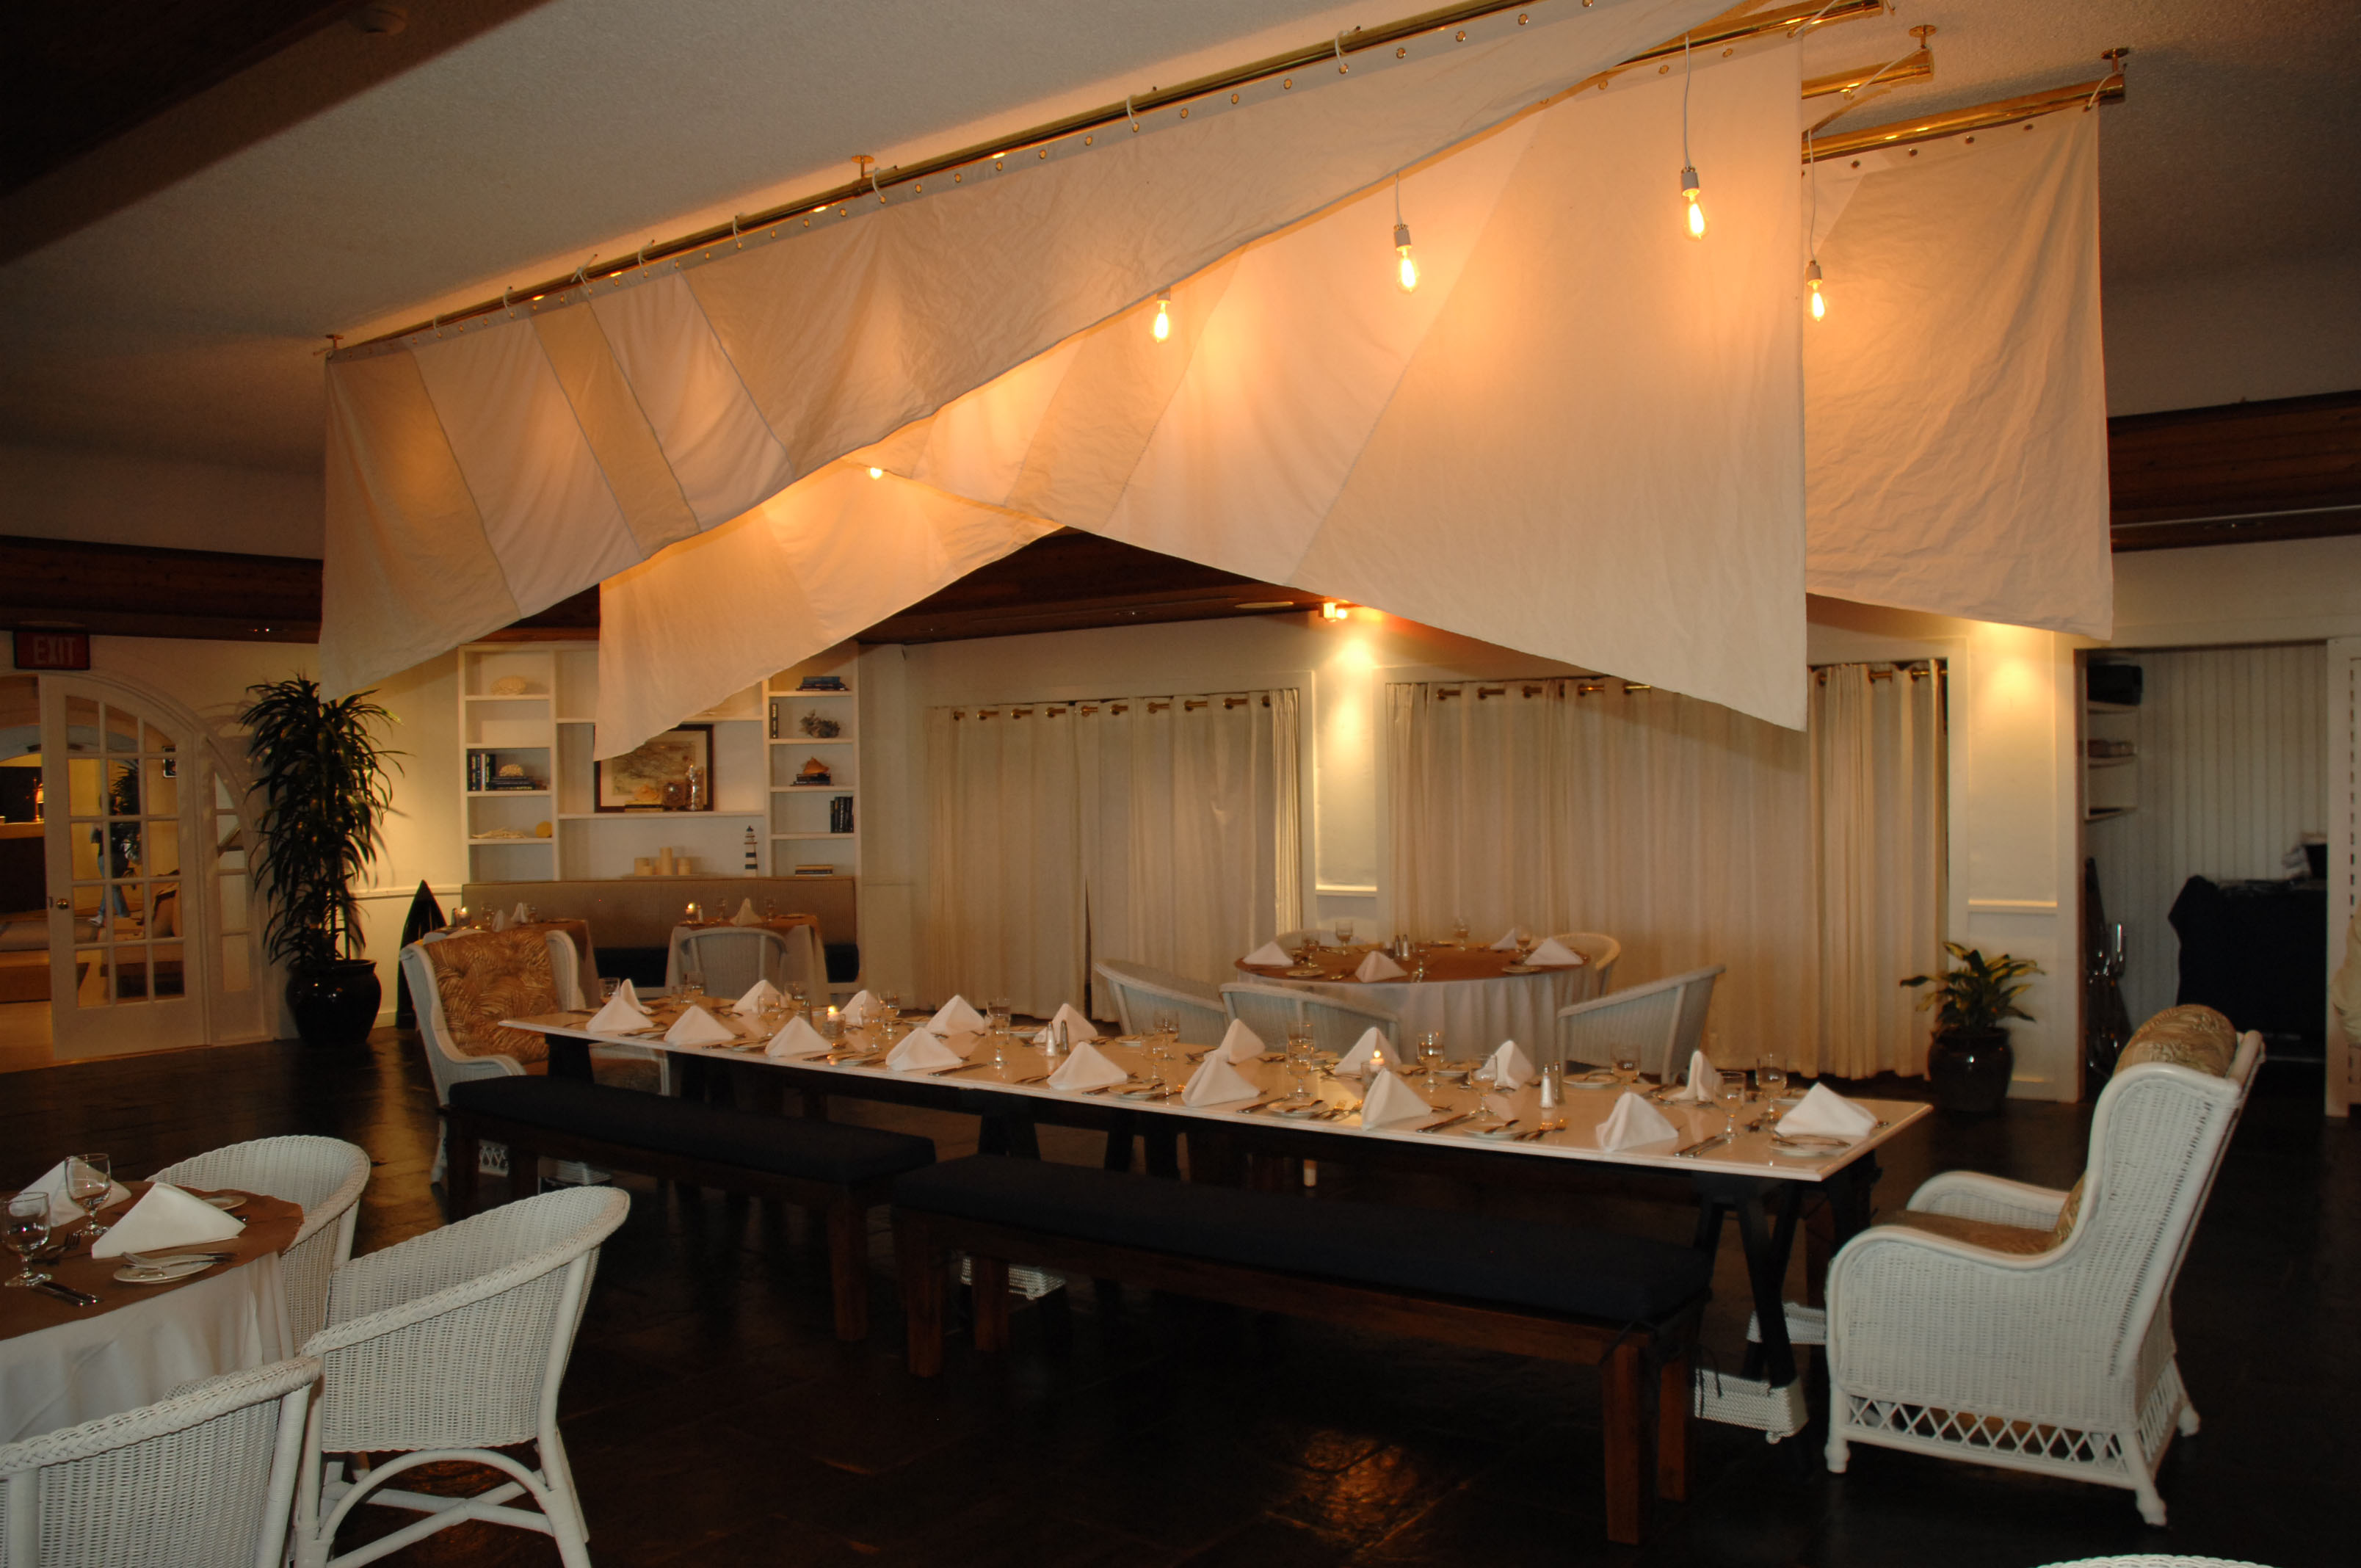 The Gulf Coast Kitchen by Gabriele Corcos @ Montauk Yacht Club